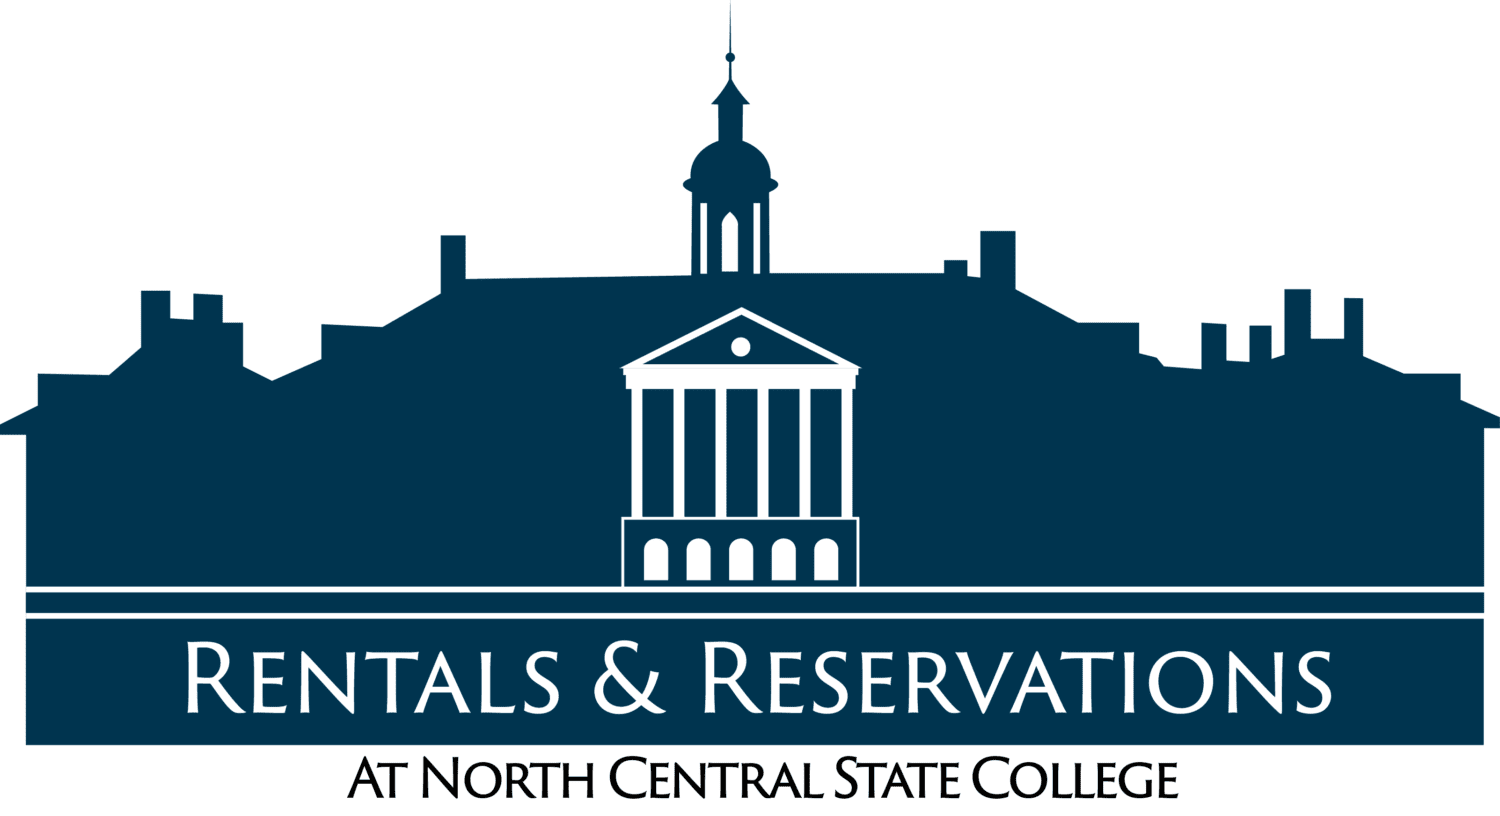 rentals and reservations logo